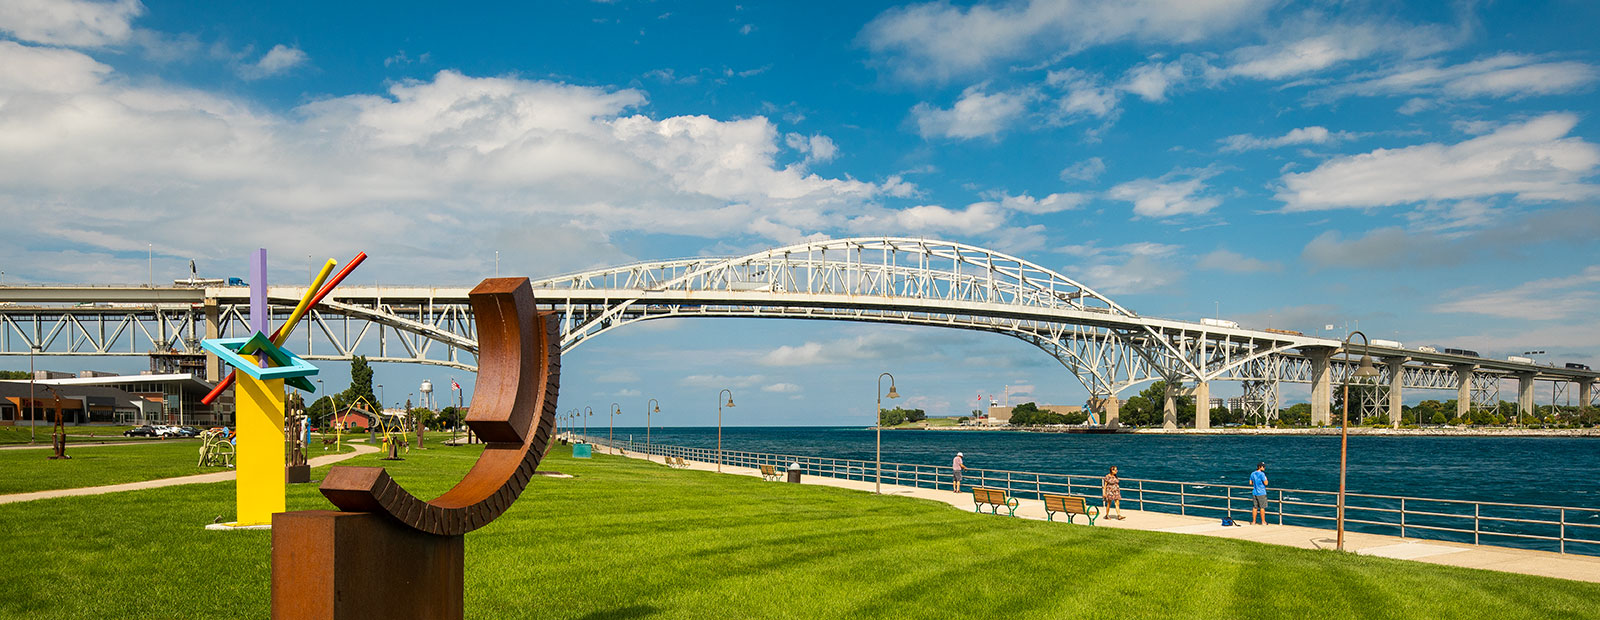 Beautiful blue skies and water making Port Huron an inviting place to live, work and play.